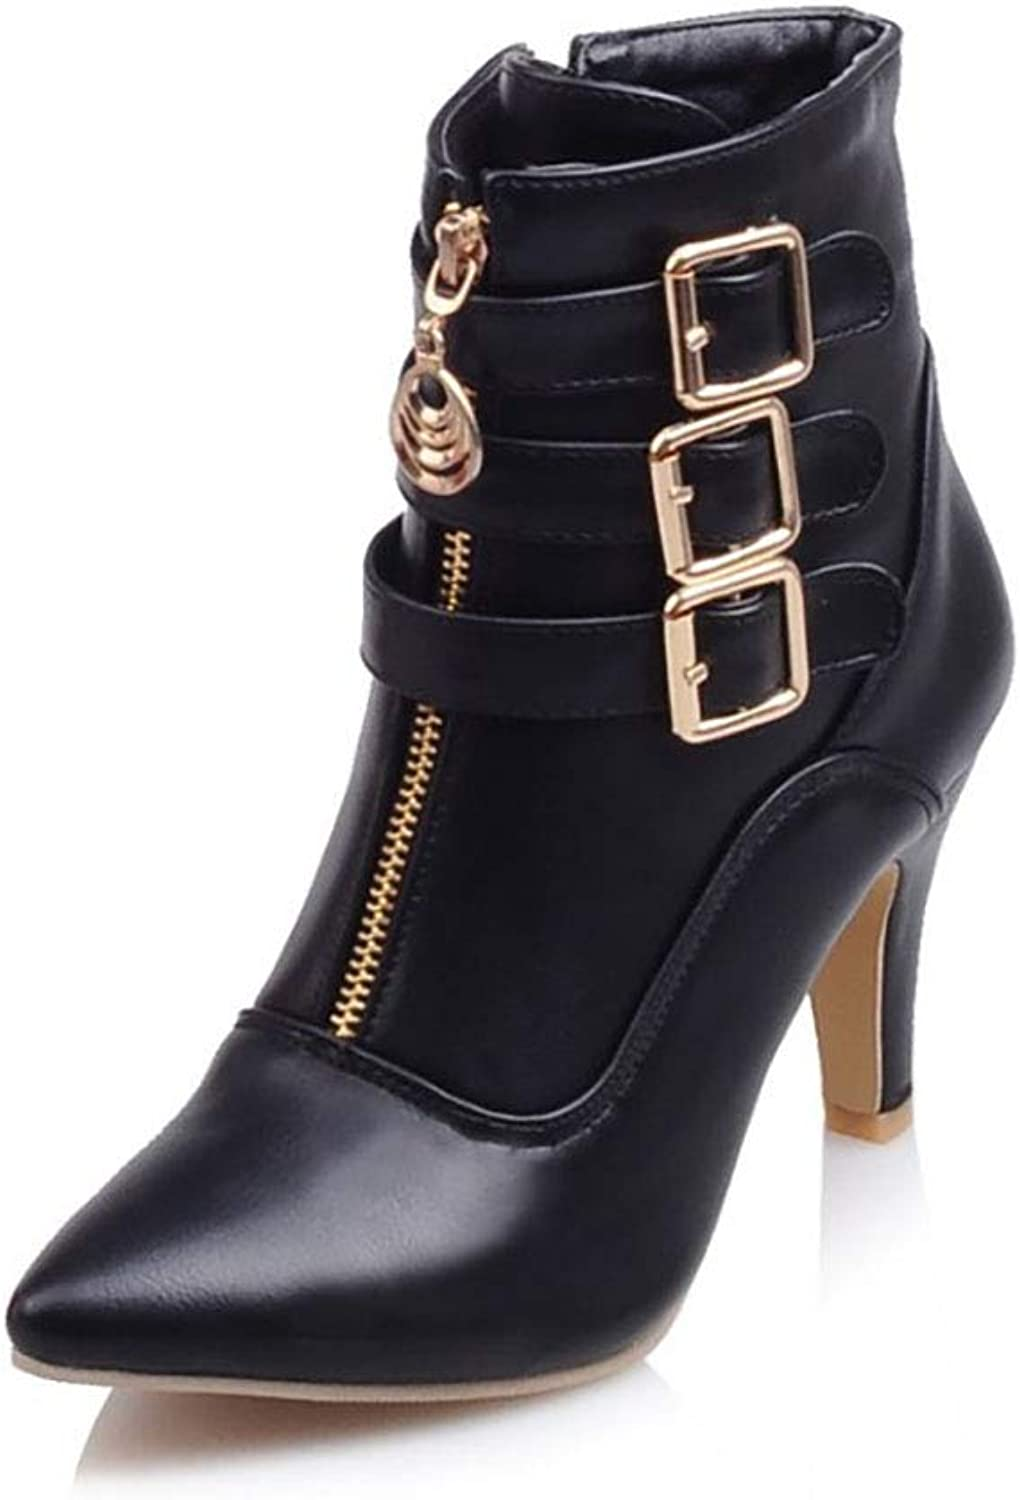 Women's Martin Boots Artificial PU Pointed high Heel and Bare Boots Side Zipper Belt Buckle Single Boots Autumn and Winter New